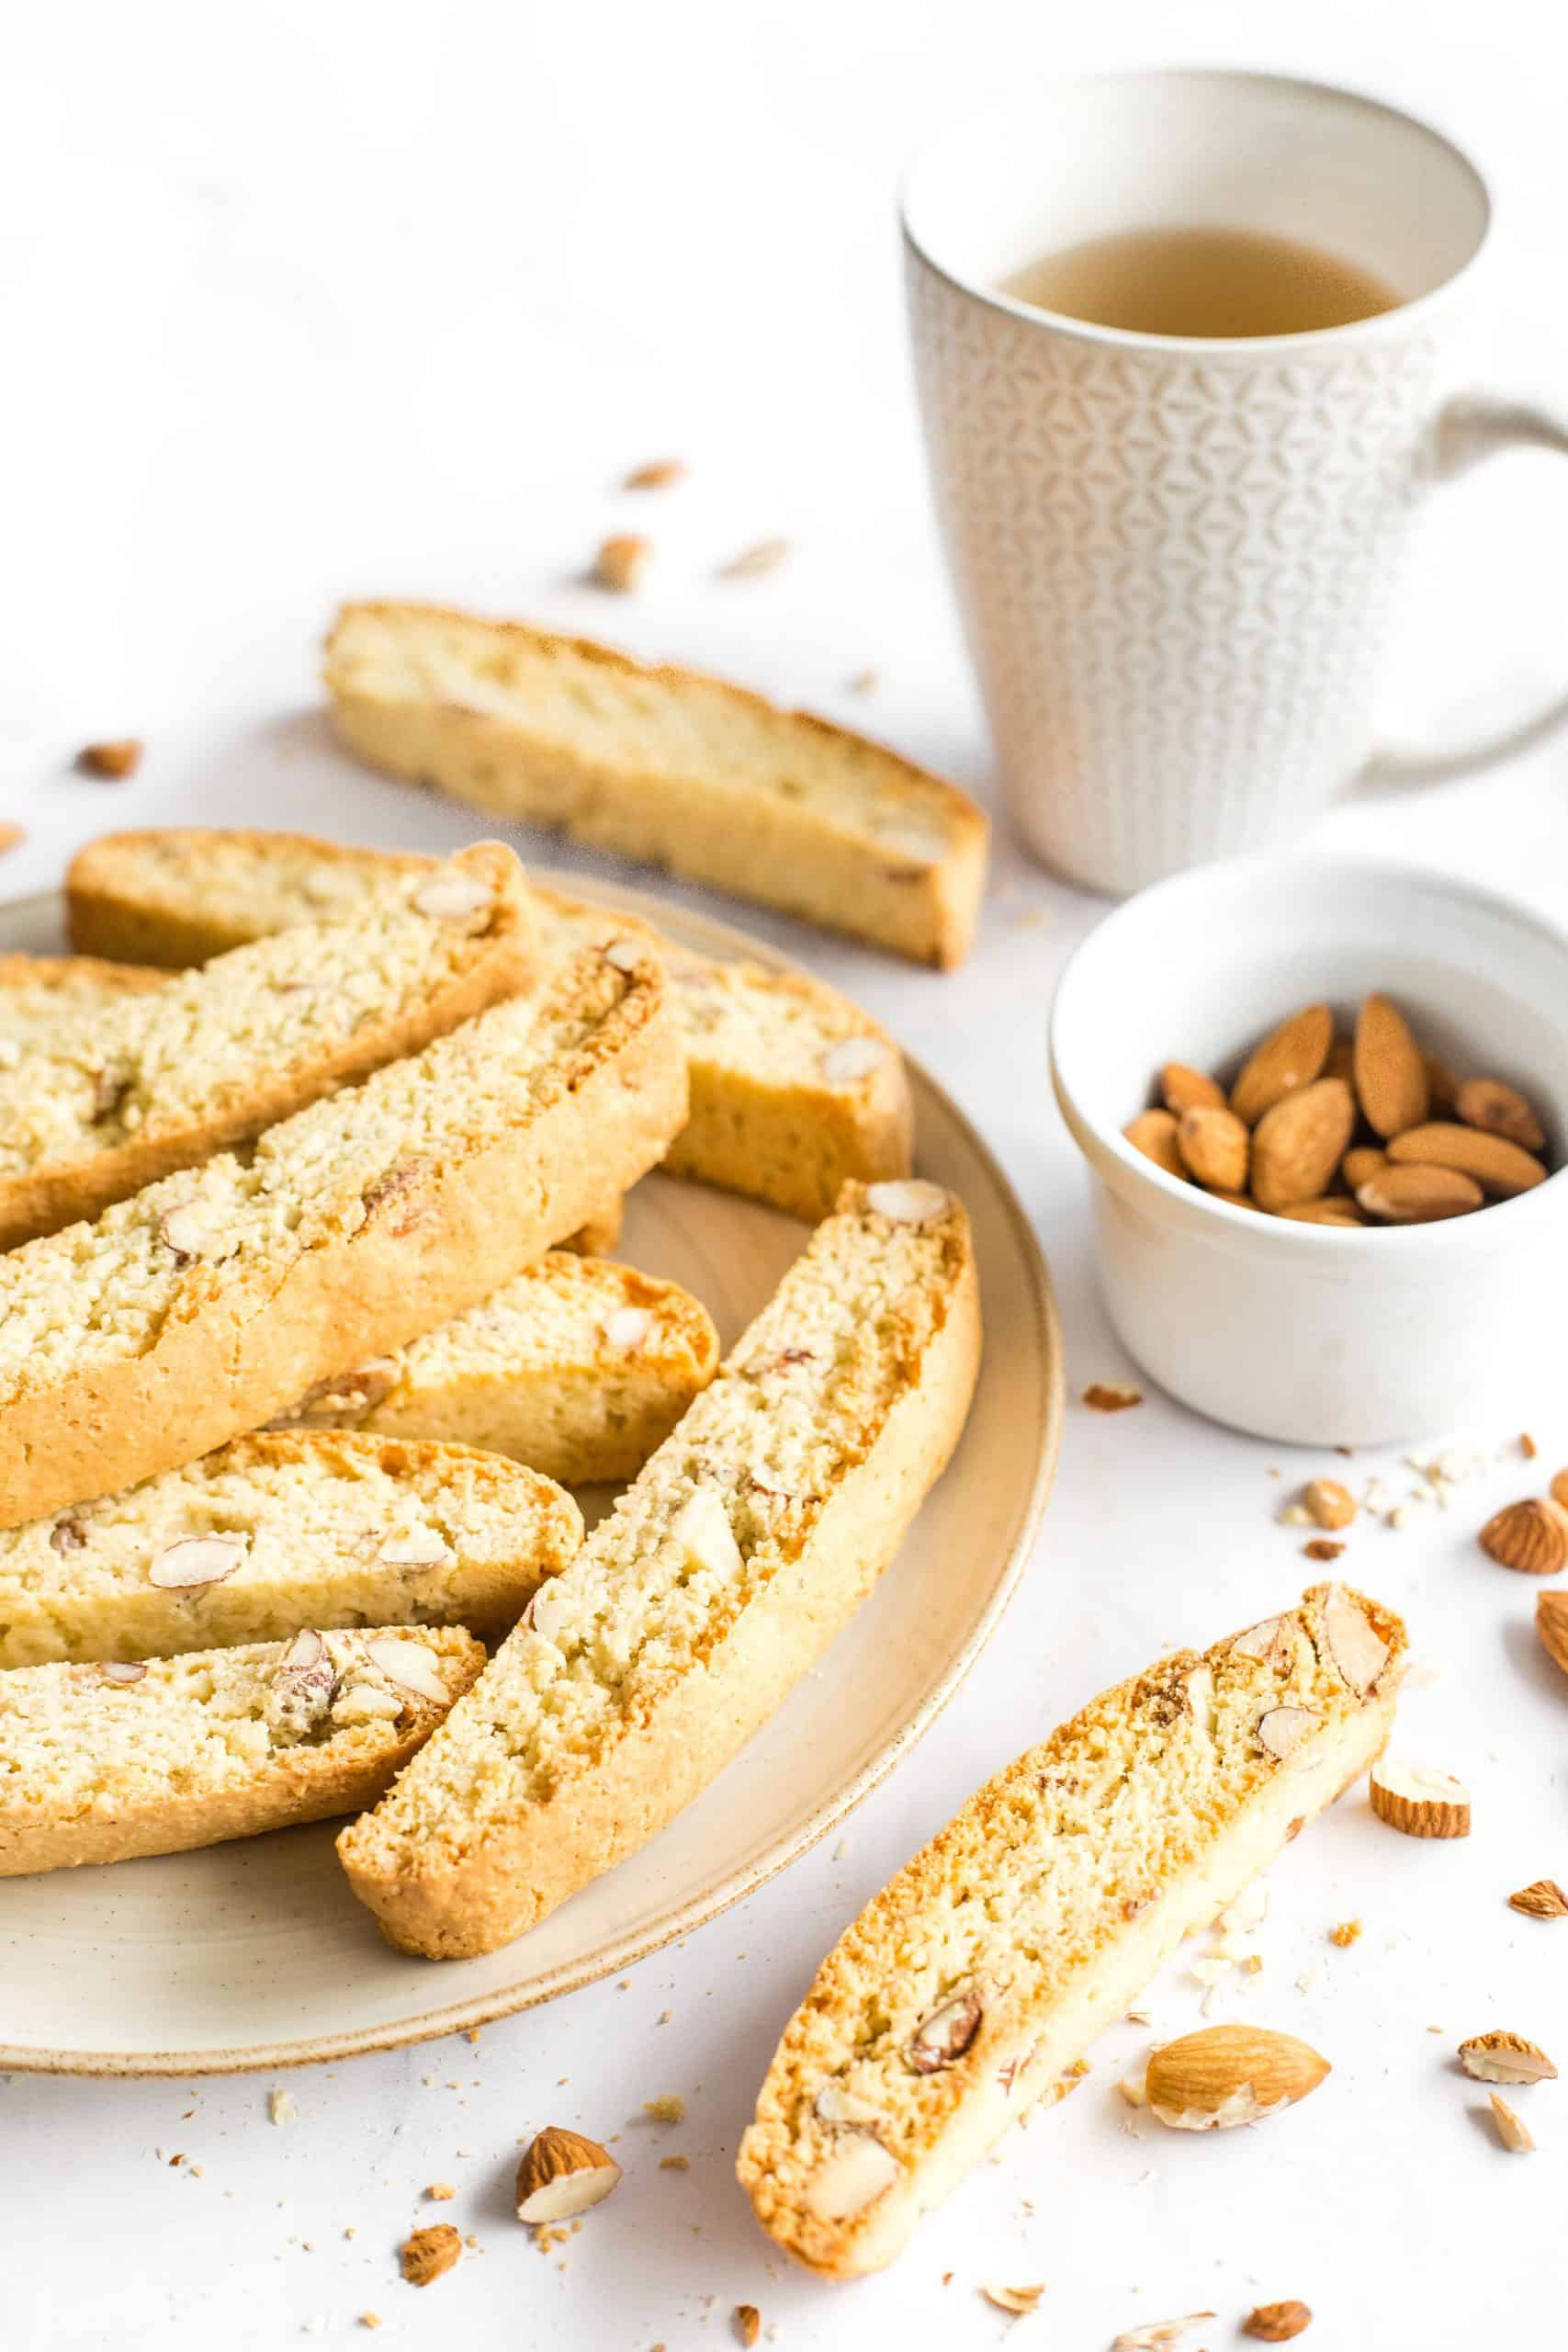 A plate of biscotti, almonds, and a cup of tea on a marble board.